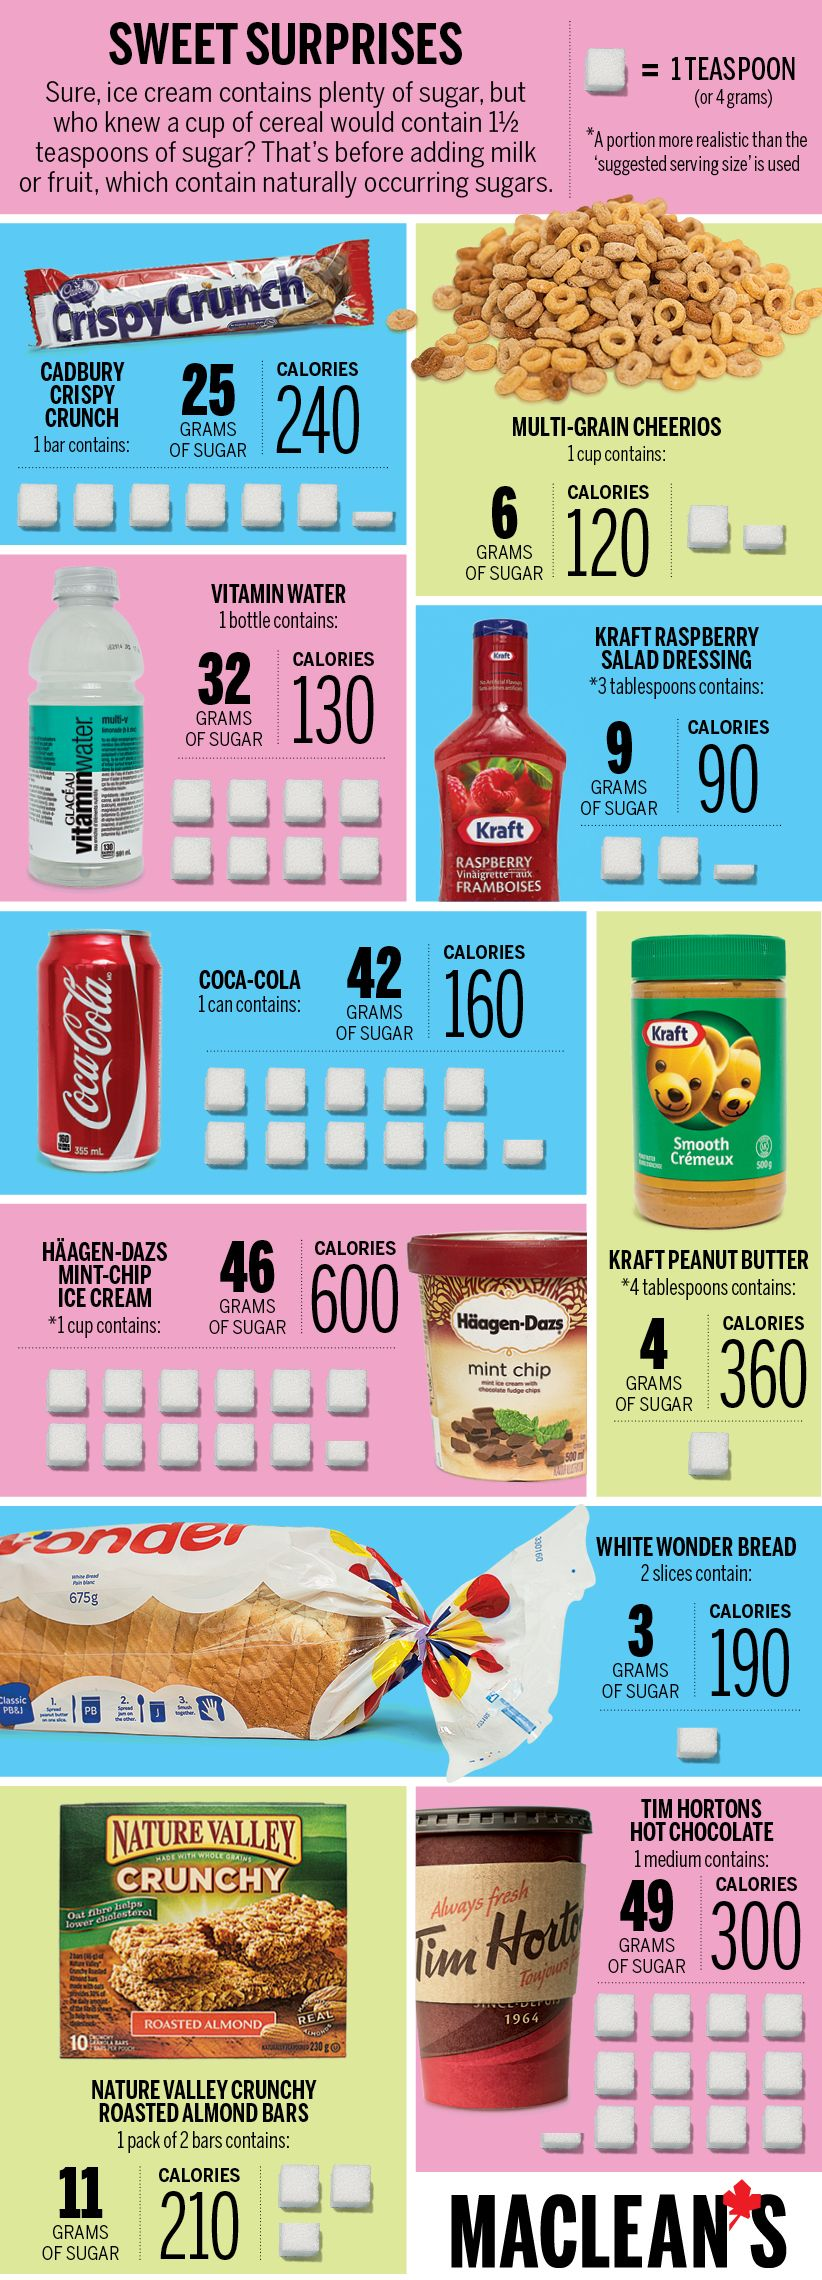 Daily Intake of Sugar — How Much Sugar Should You Eat Per Day?